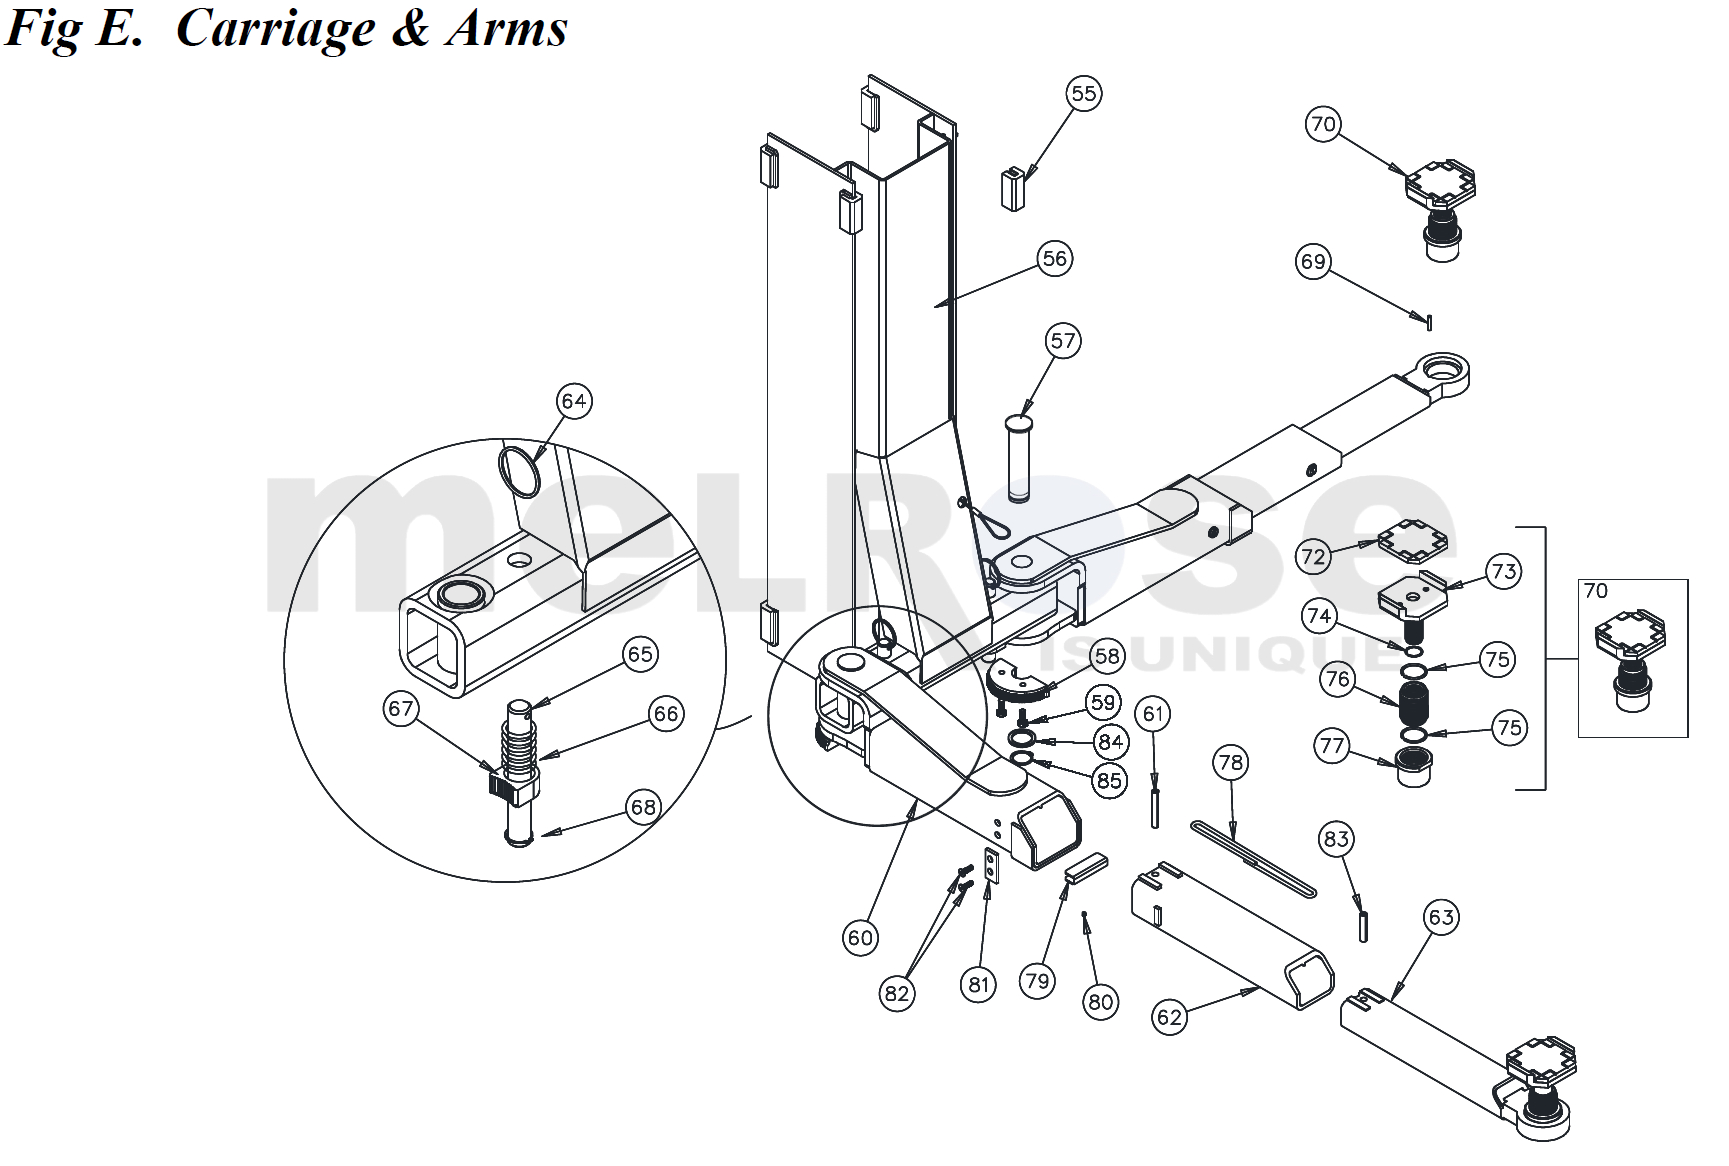 clfp9-carriage-arms-diagram-marked.jpg